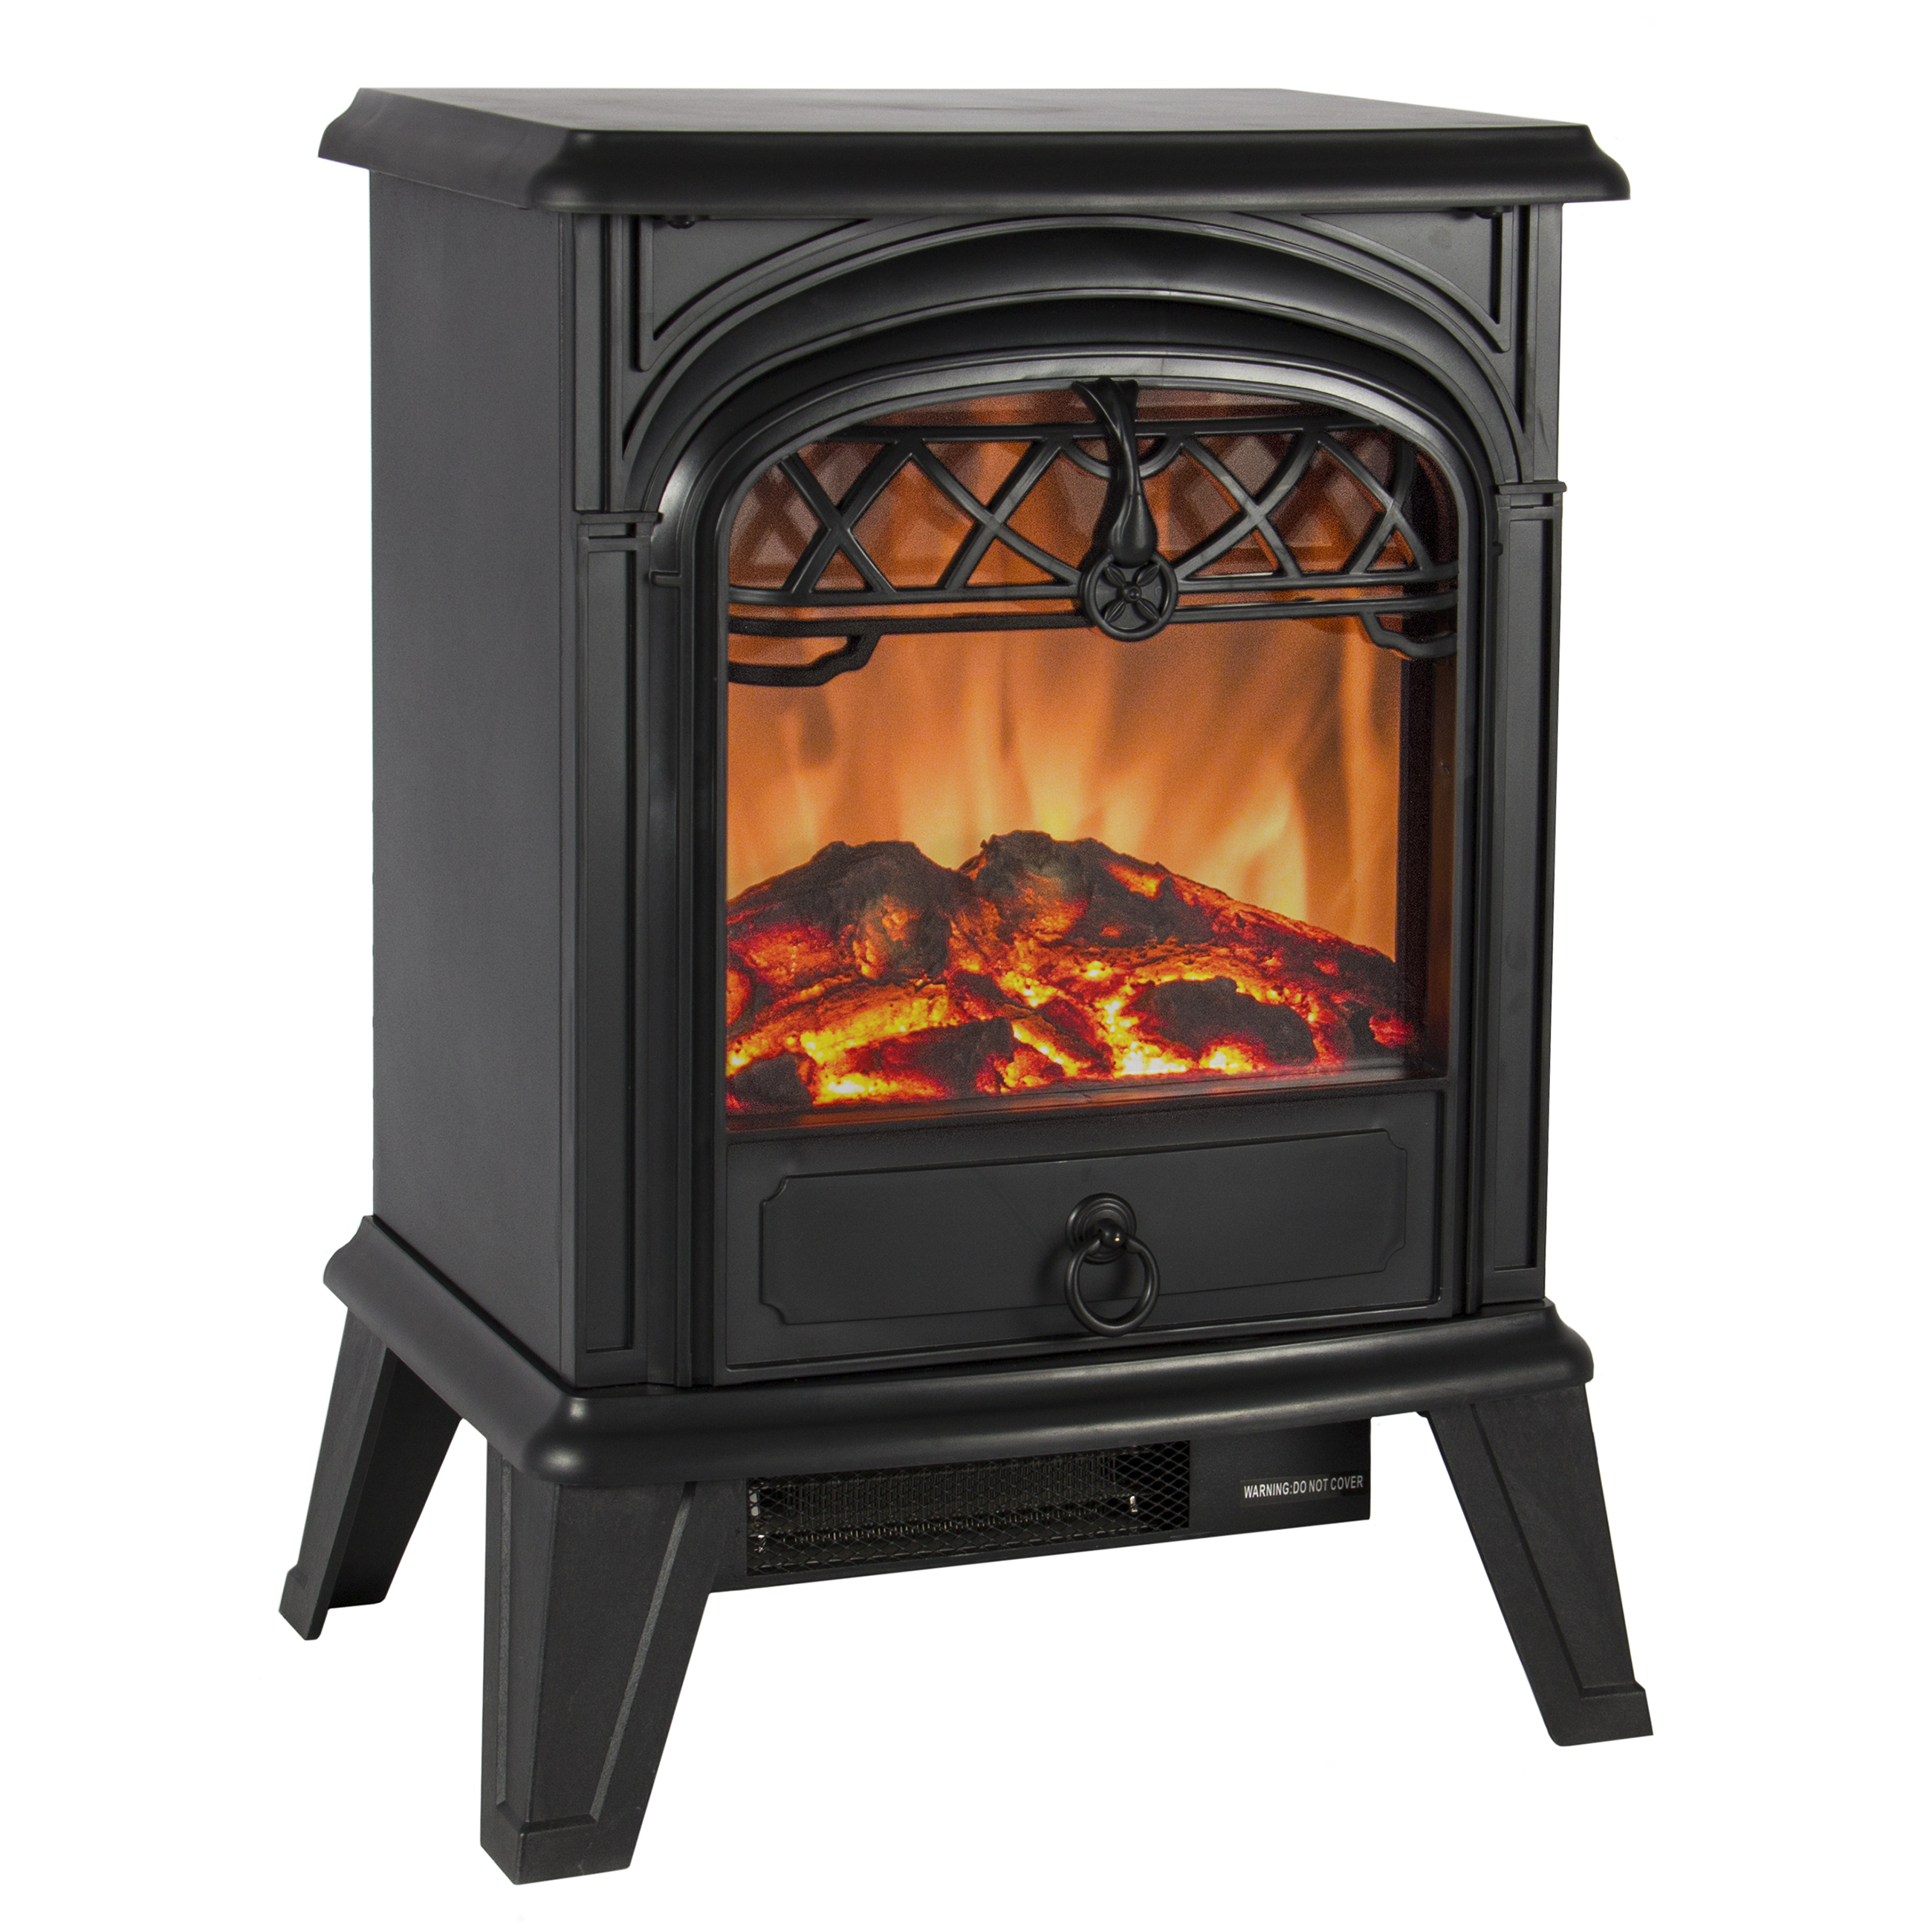 Best Choice Products 1500W Portable Free Standing Electric Wood Log Flame Fireplace Stove Heater - Black